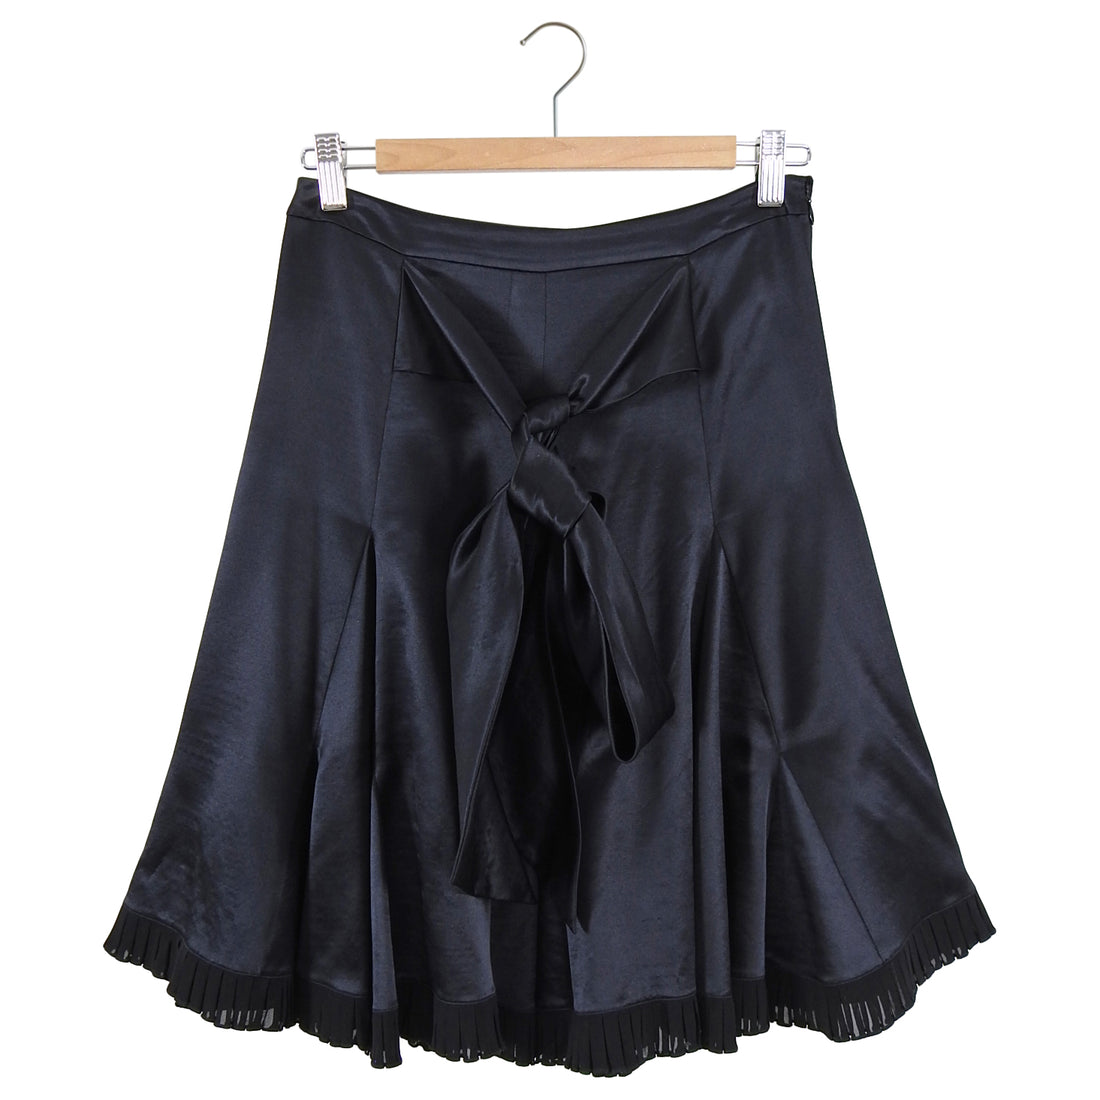 Emilio Pucci Black Silk Satin Flare Skirt with Sash Belt - S